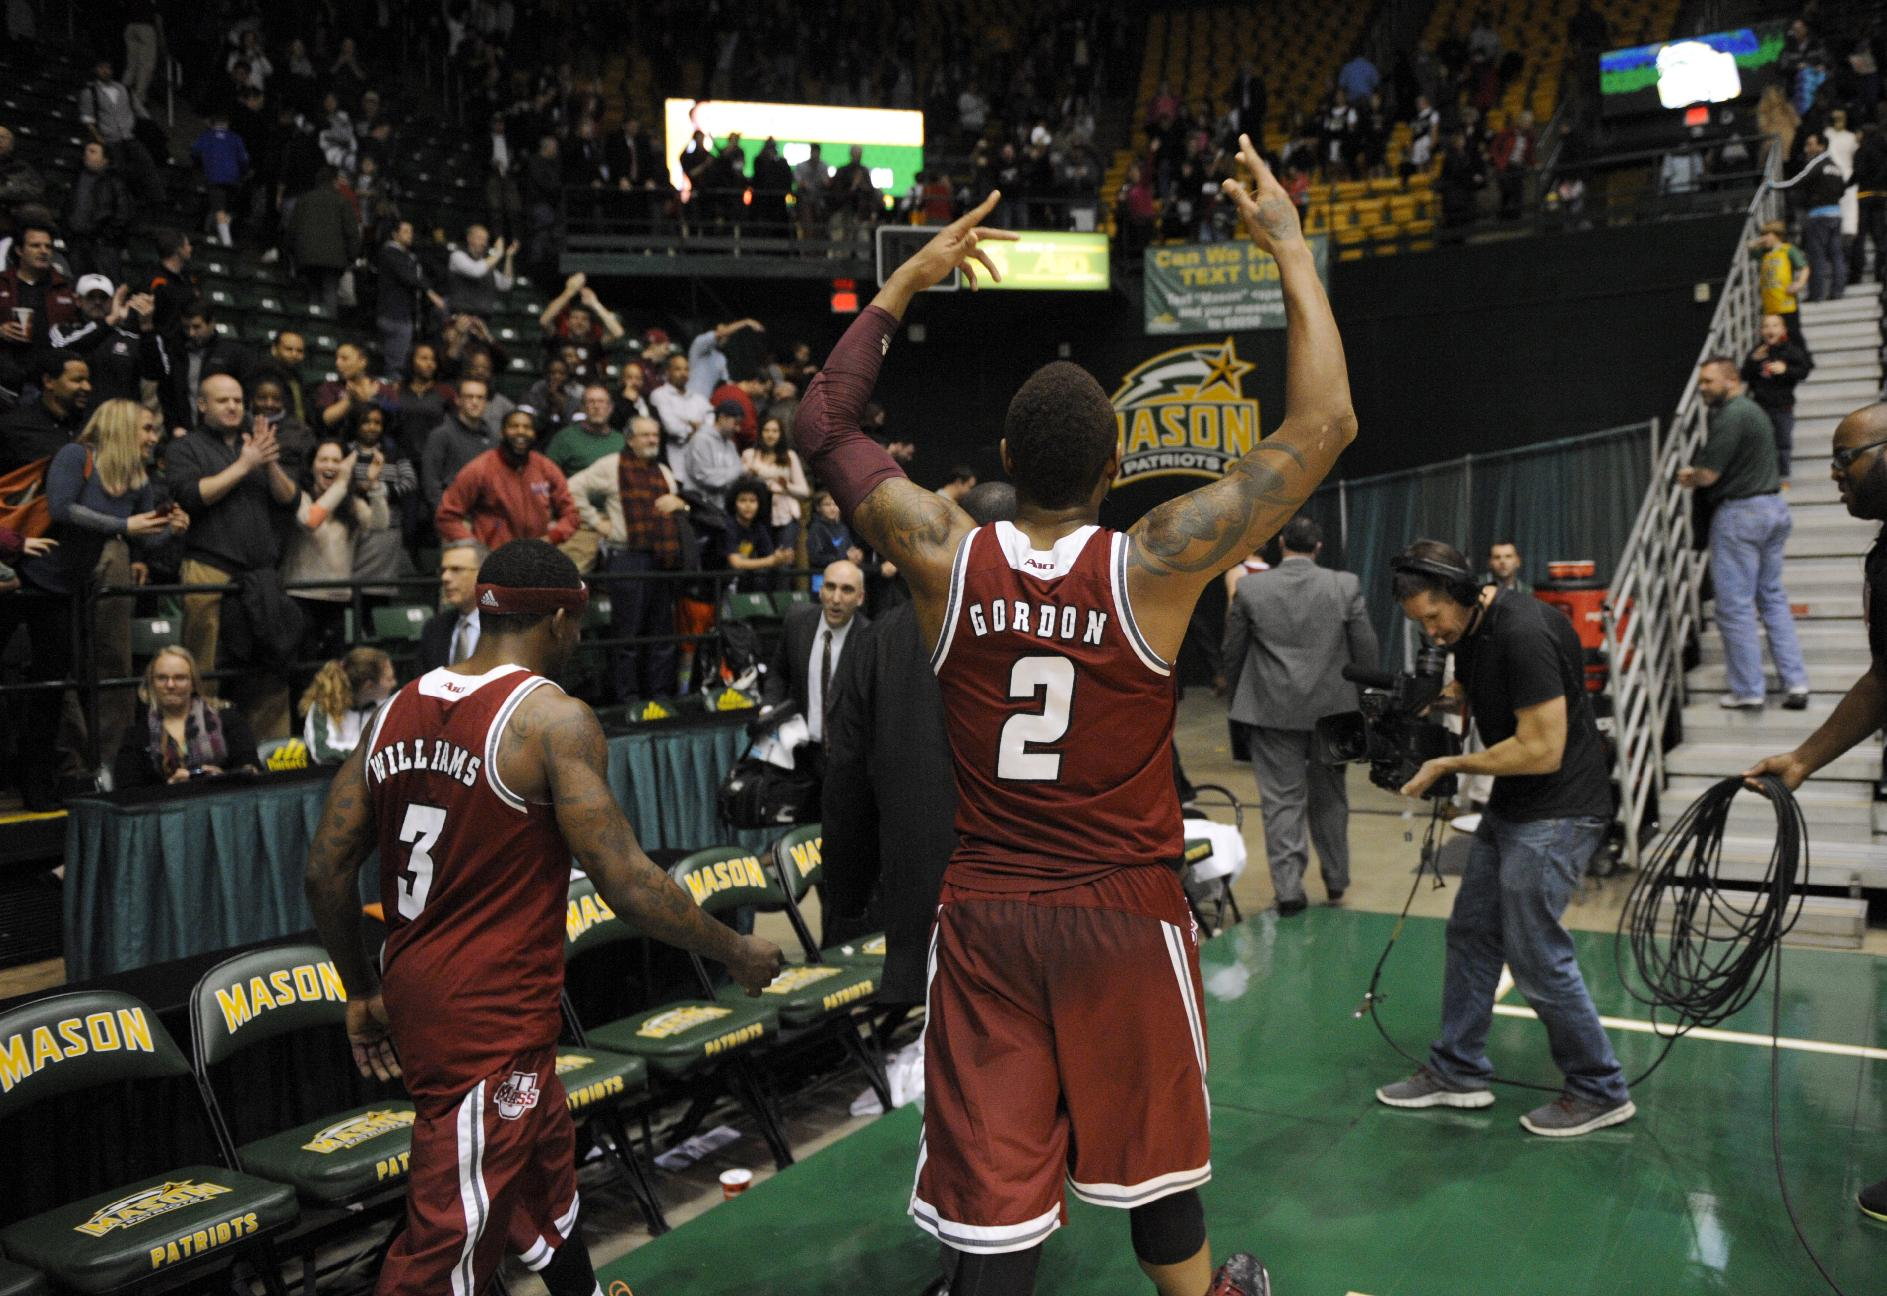 Massachusetts guard Derrick Gordon (2) raises his arms to the crowd as he and Chaz Williams (3) heads off the court after they beat George Mason 88-87 in an NCAA college basketball game, Wednesday, Jan. 15, 2014, in Fairfax, Va